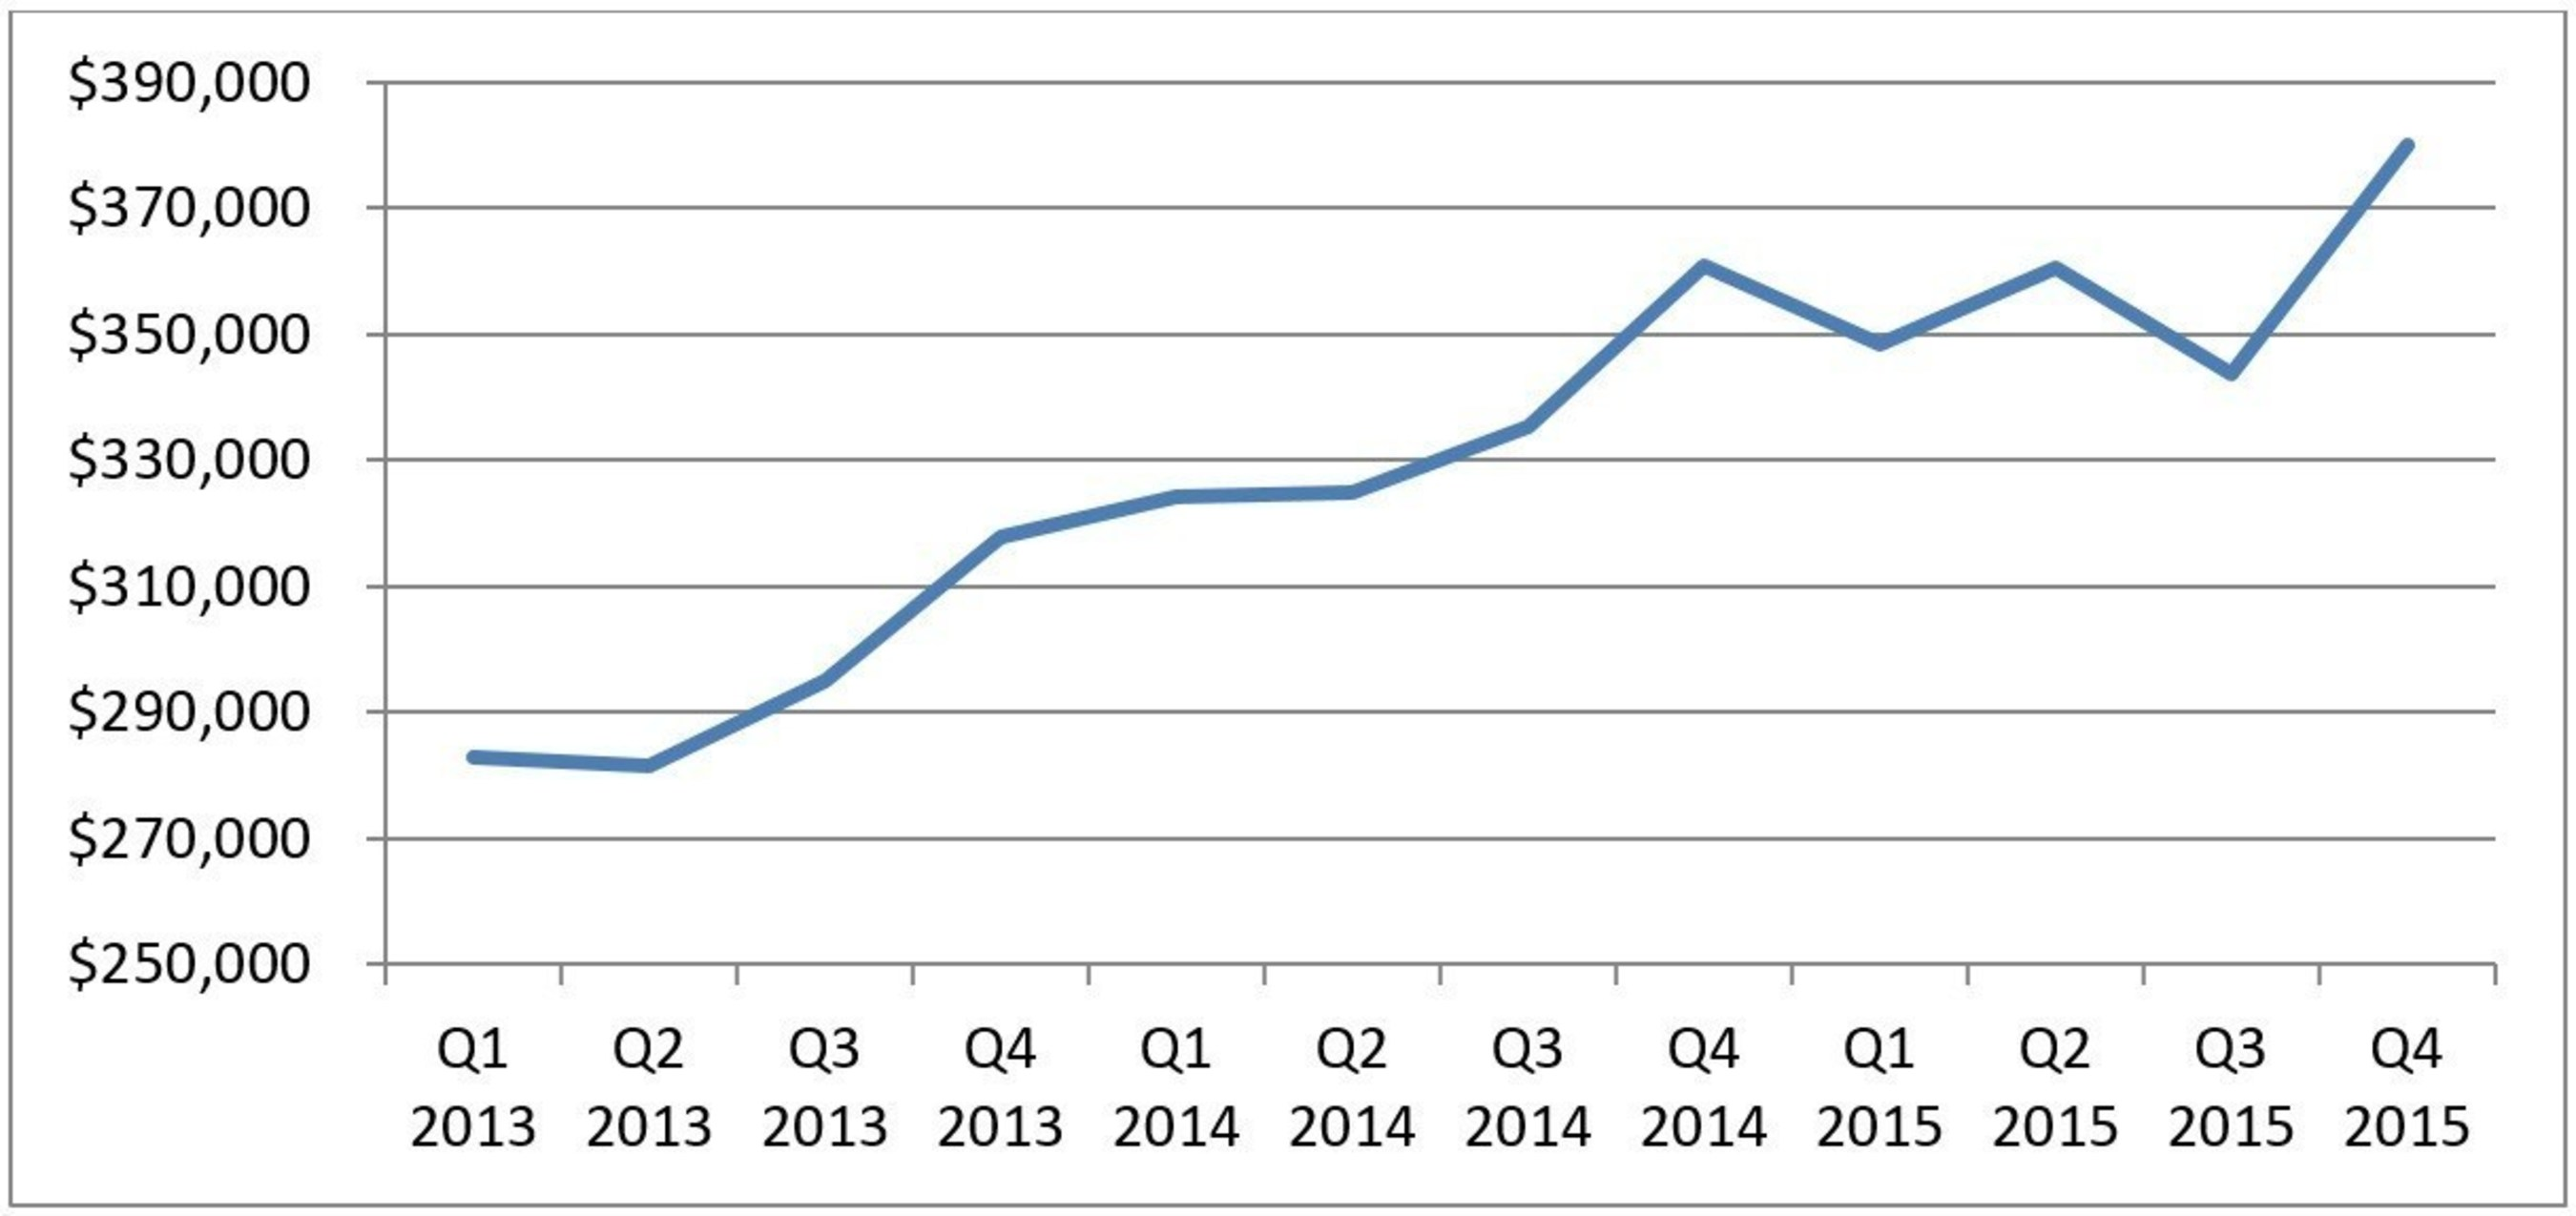 Quarterly Loans held for investment trend line (in thousands)